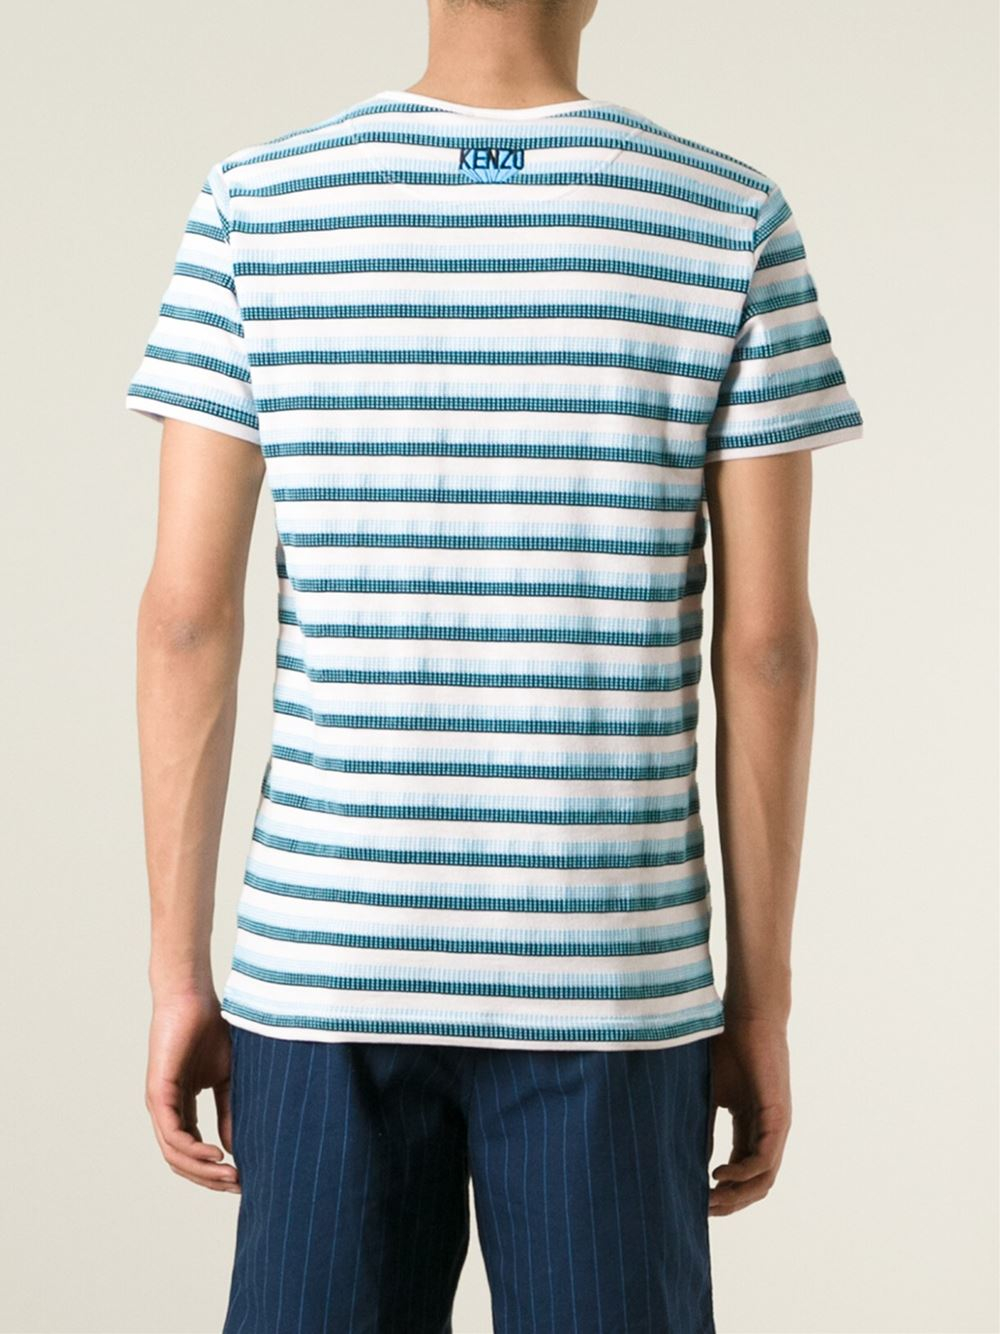 Kenzo striped t shirt in blue for men lyst for Purple and black striped t shirt